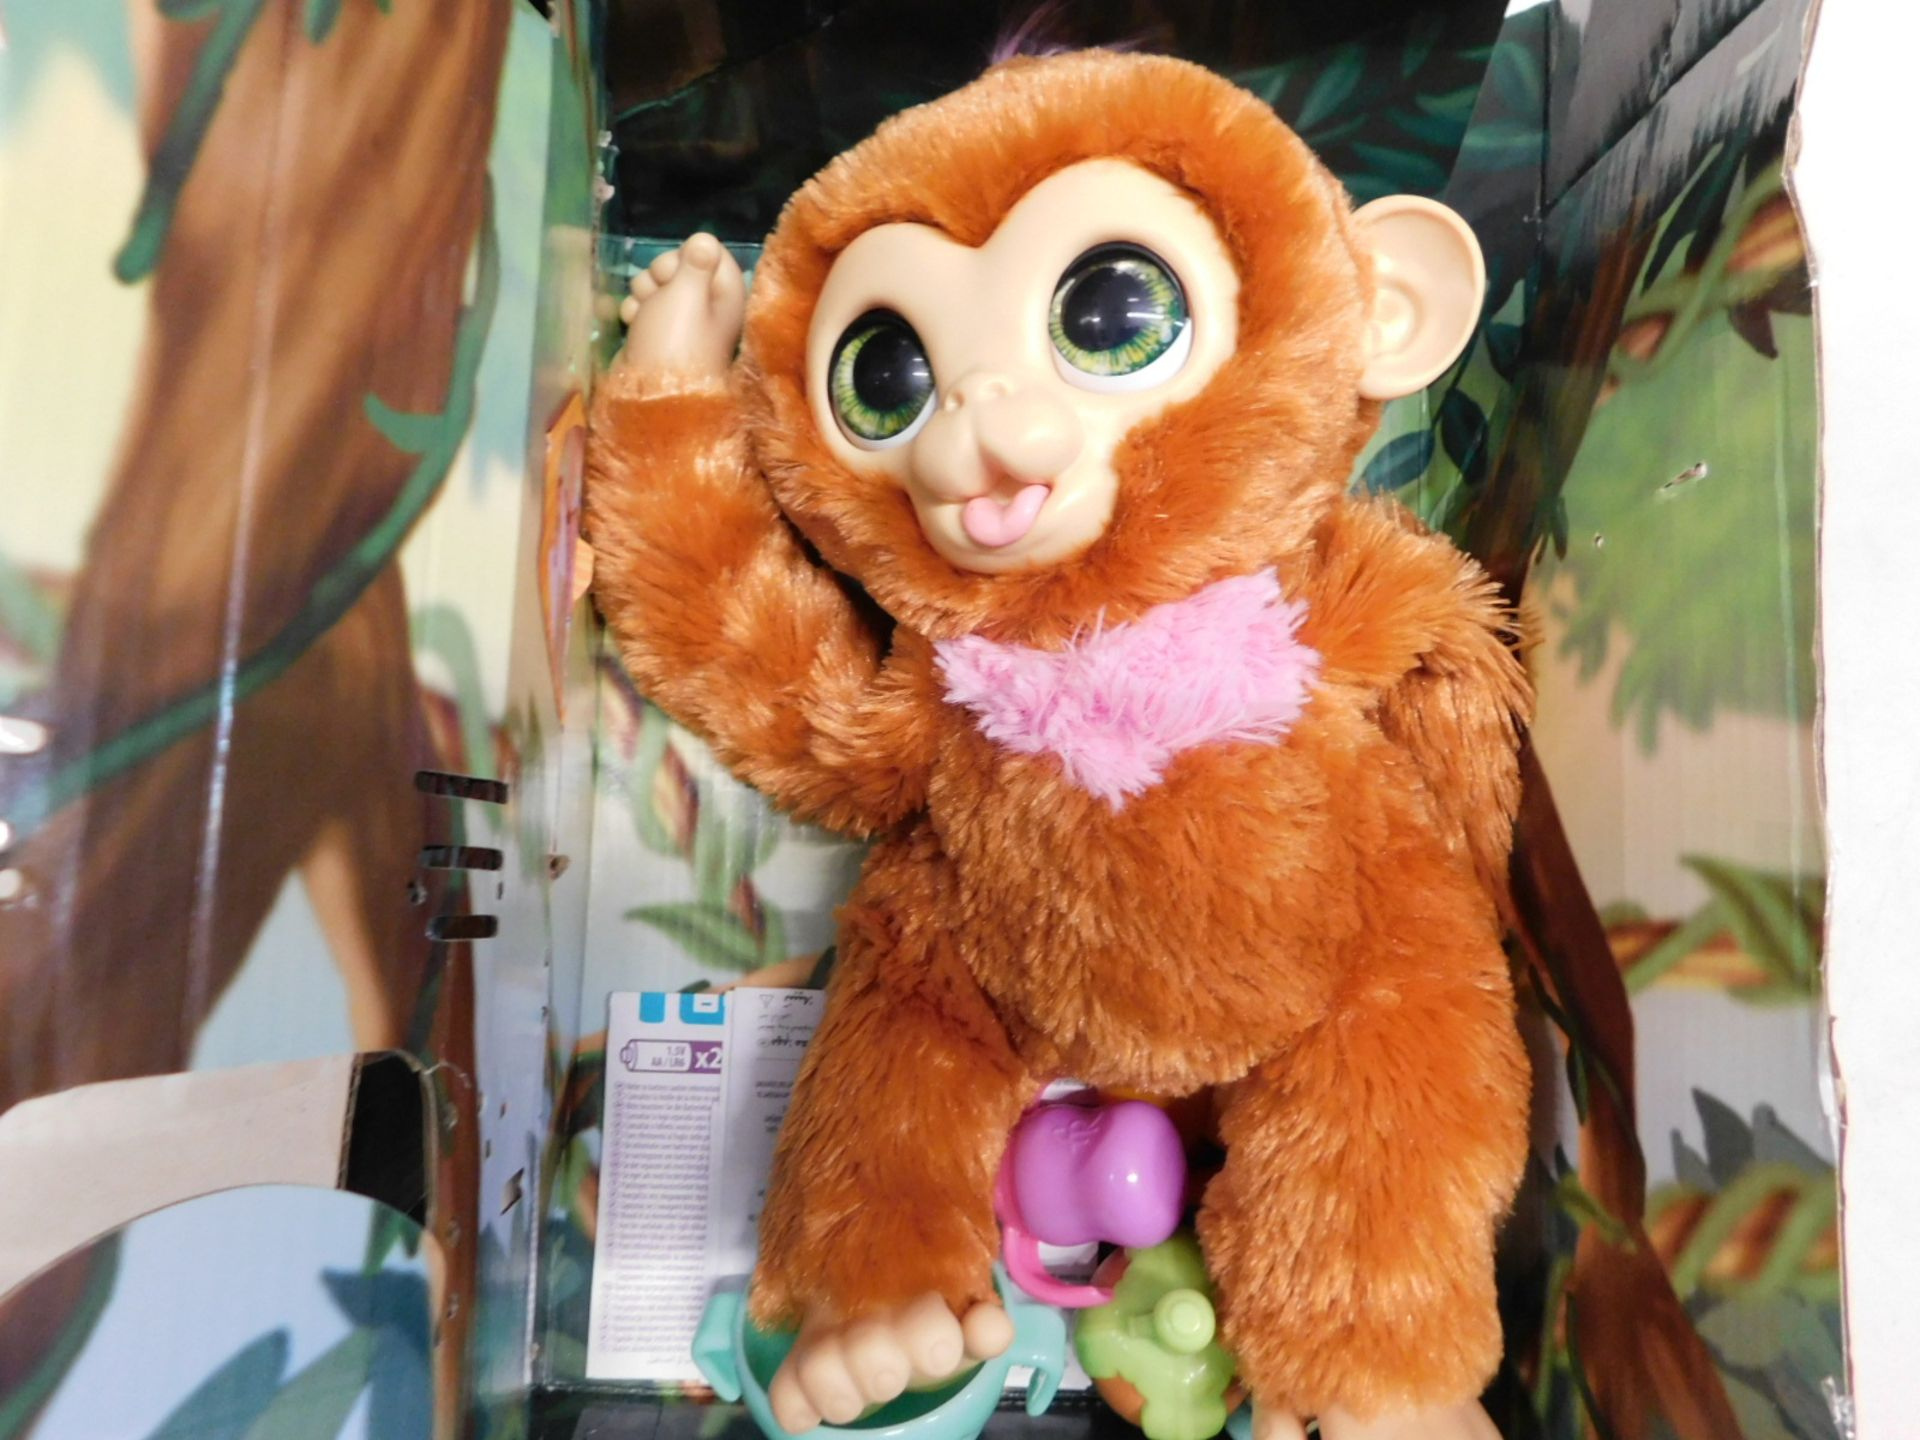 1 FURREAL PIPER MY BABY MONKEY INTERACTIVE ANIMATRONIC PLUSH TOY (4+ YEARS) RRP £49